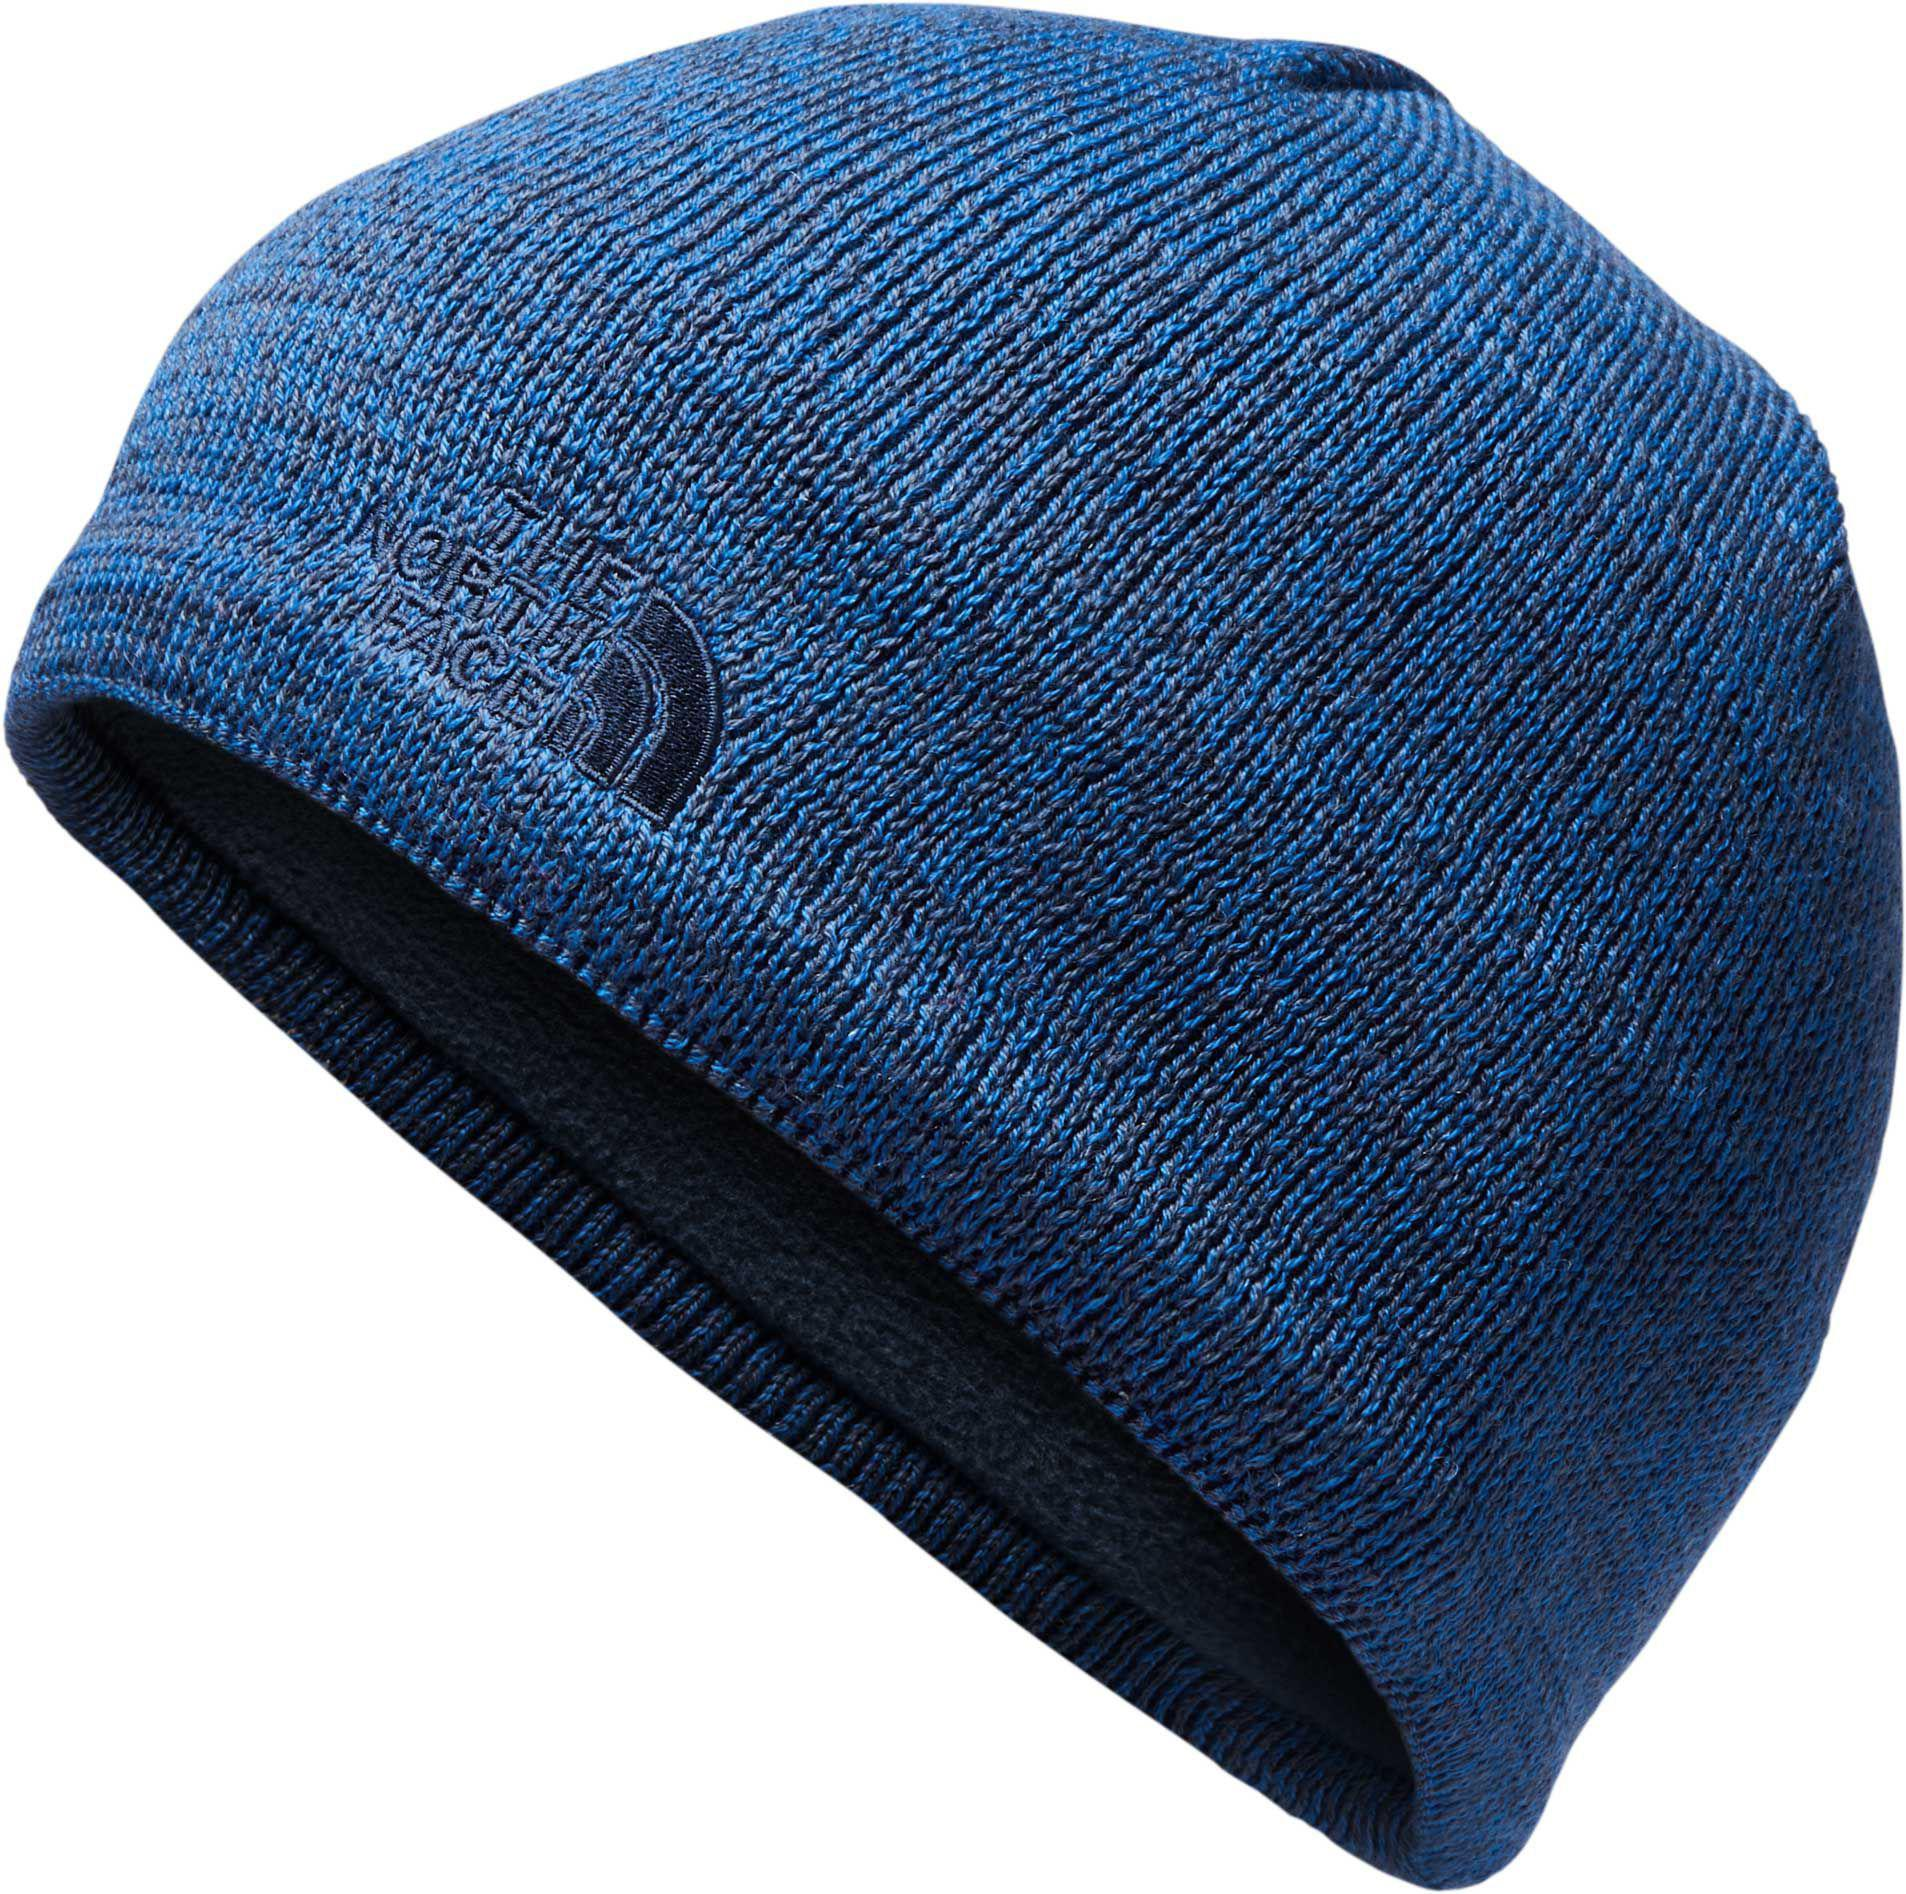 Lyst - The North Face Jim Beanie in Blue for Men 84a40100388b